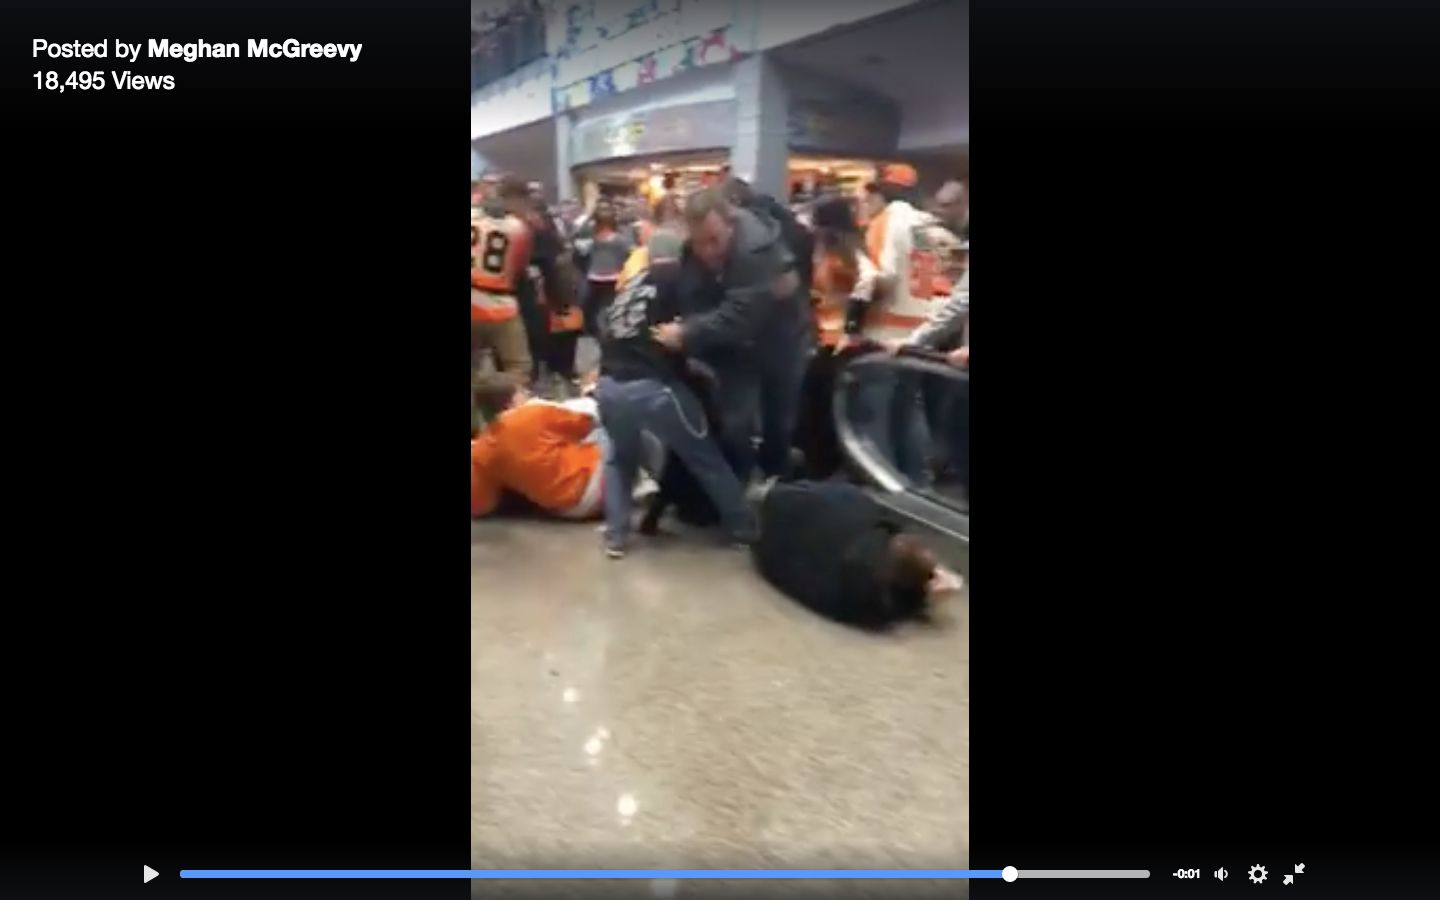 Philadelphia Flyers fans were seen being thrown off an escalator after beating the Ottawa Senators on Saturday.